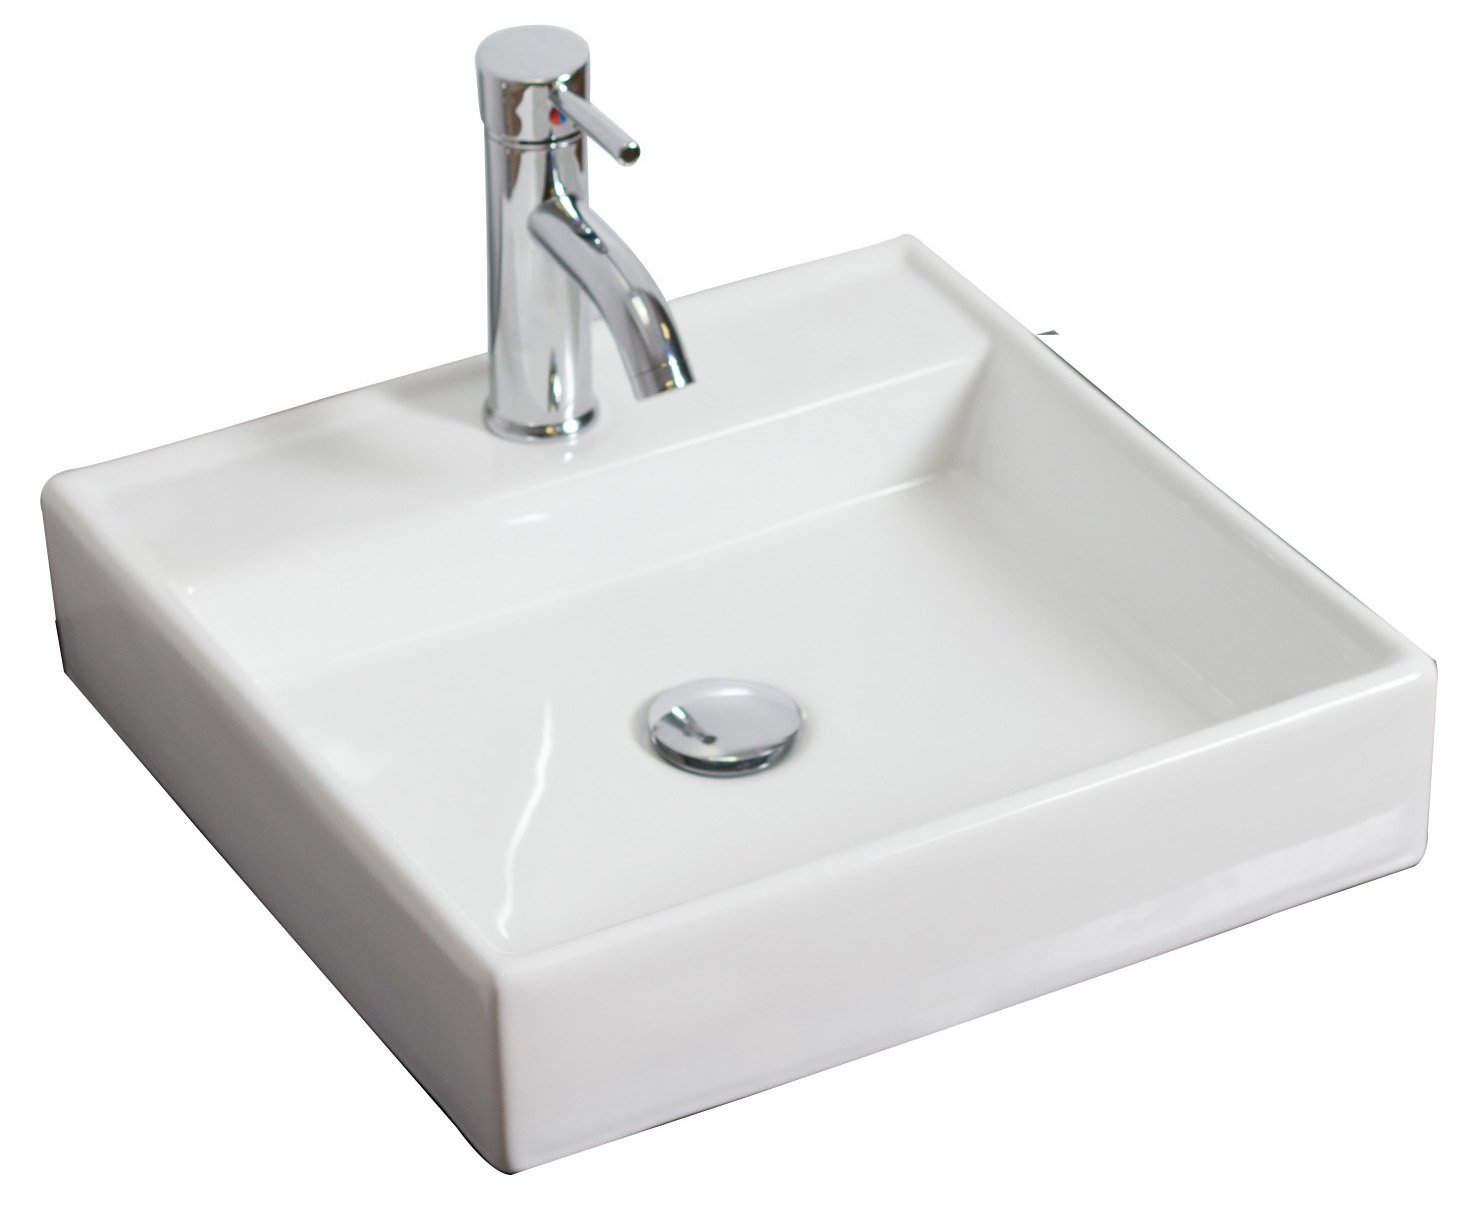 American Imaginations AI-2-1119 Wall Mount Square Vessel for Single Hole Faucet, 17.5-Inch x 17.5-Inch, White